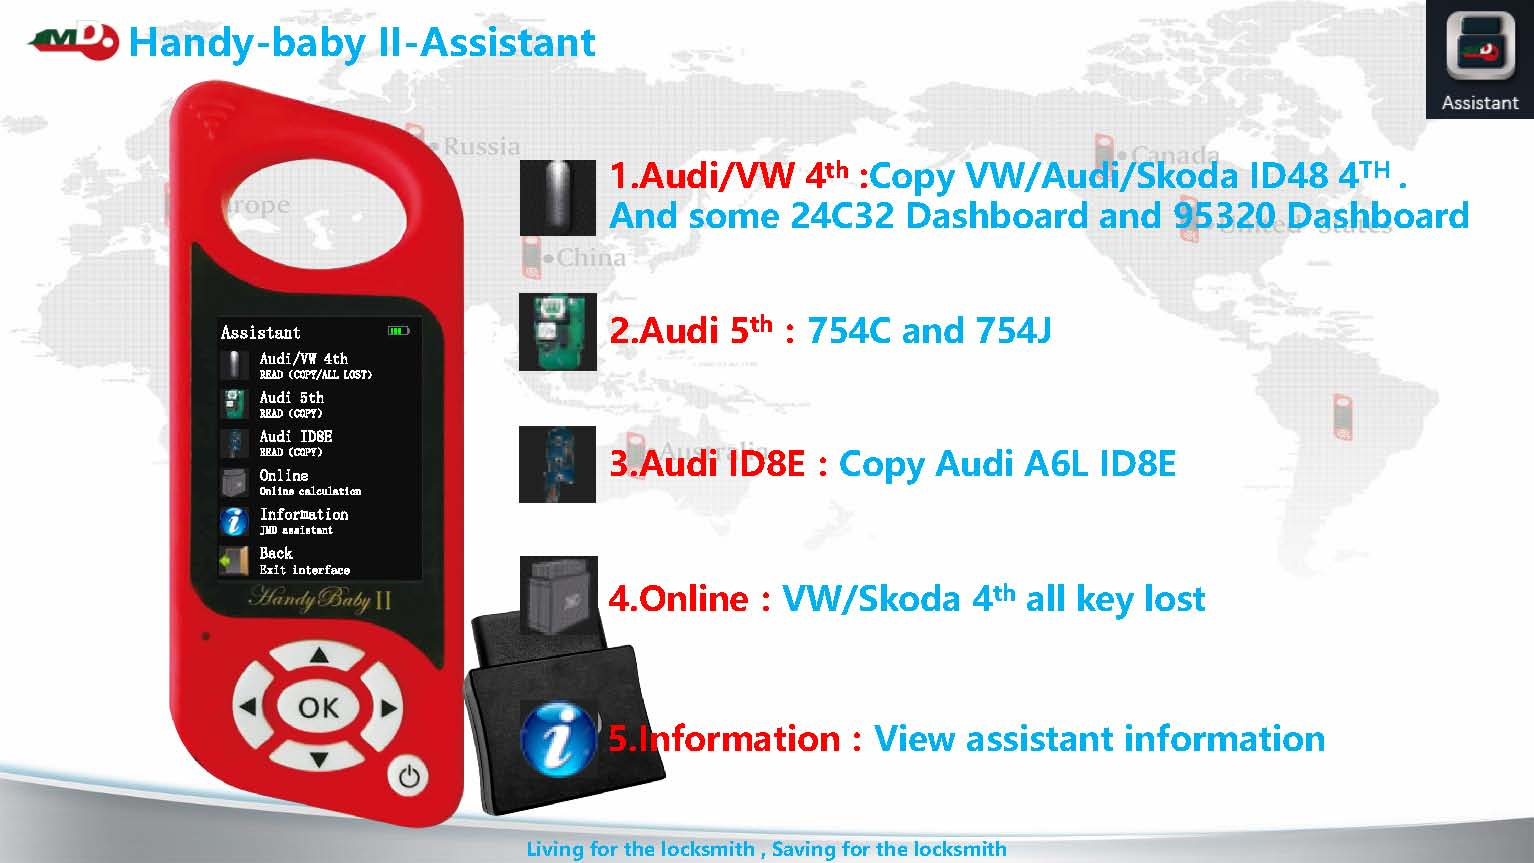 jmd-handy-baby-2-and -jmd-assistant-guide-001